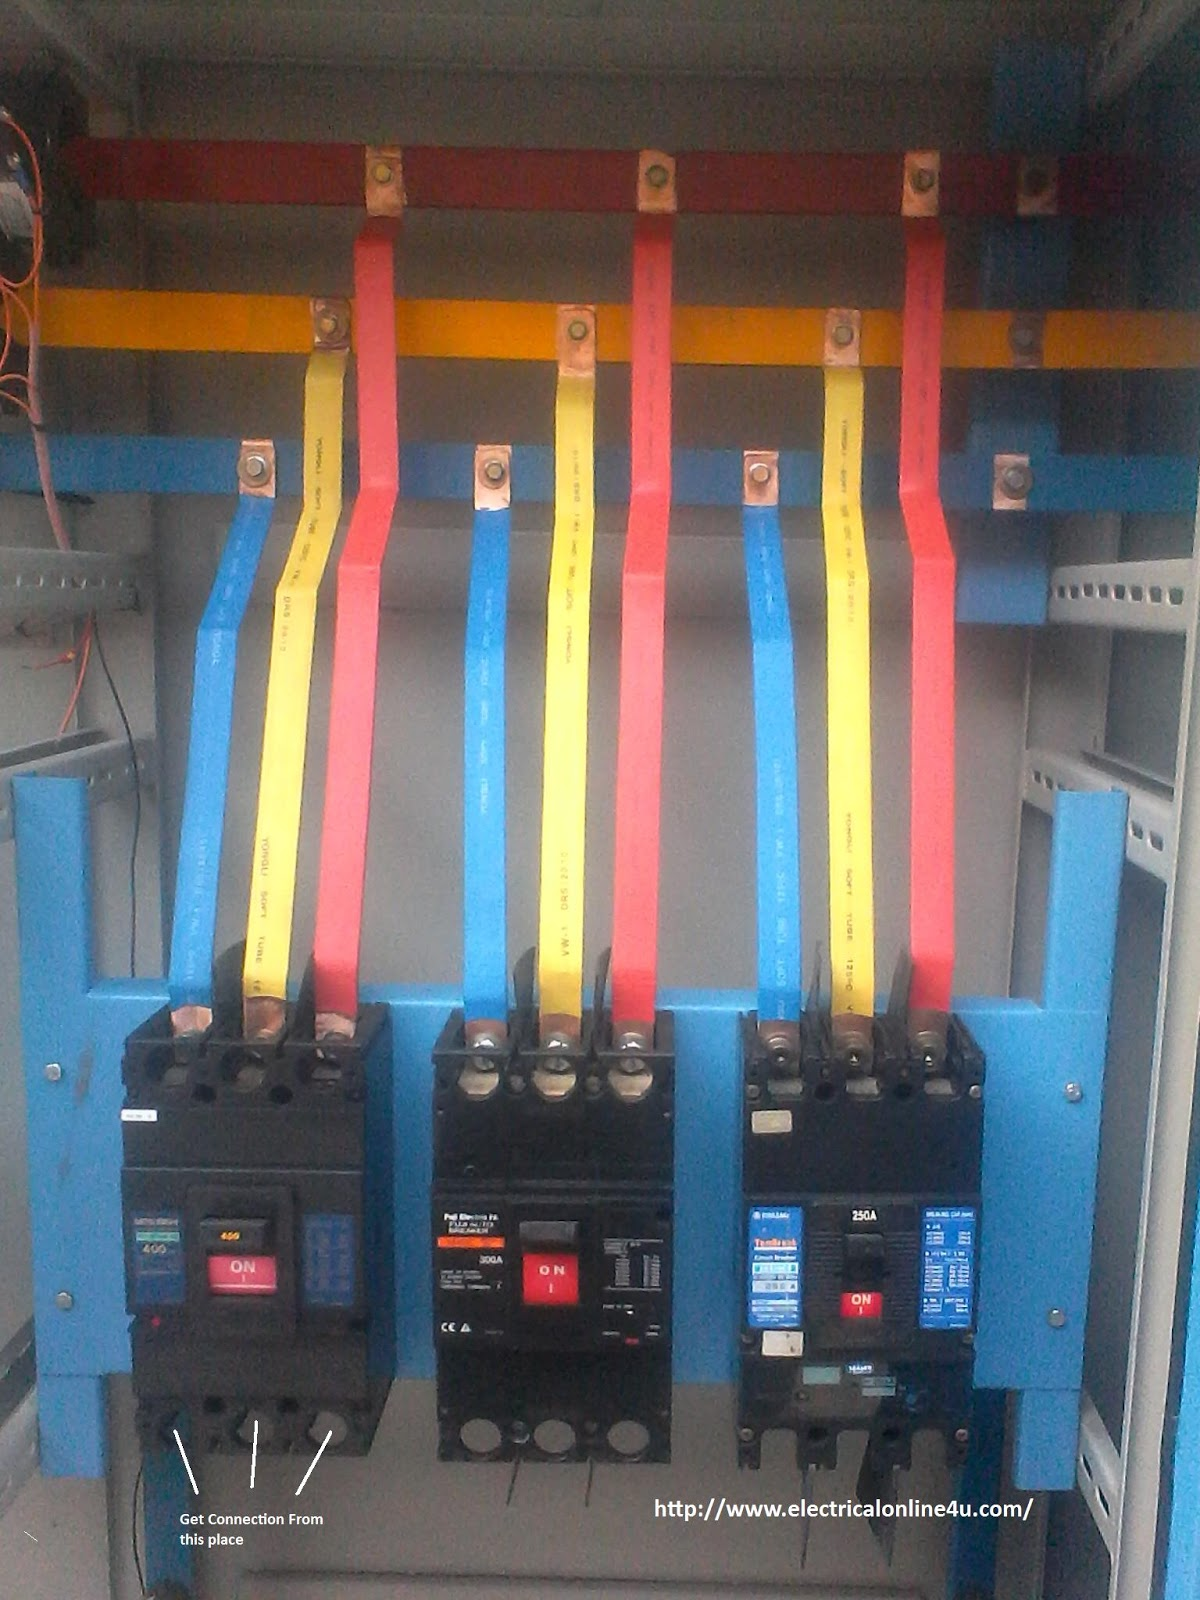 Circuit%2BBreaker%2BInstallation%2BFor%2BThree%2BPhase%2BSupply circuit breaker installation for three phase supply 3 phase schneider mccb motorized wiring diagram at couponss.co